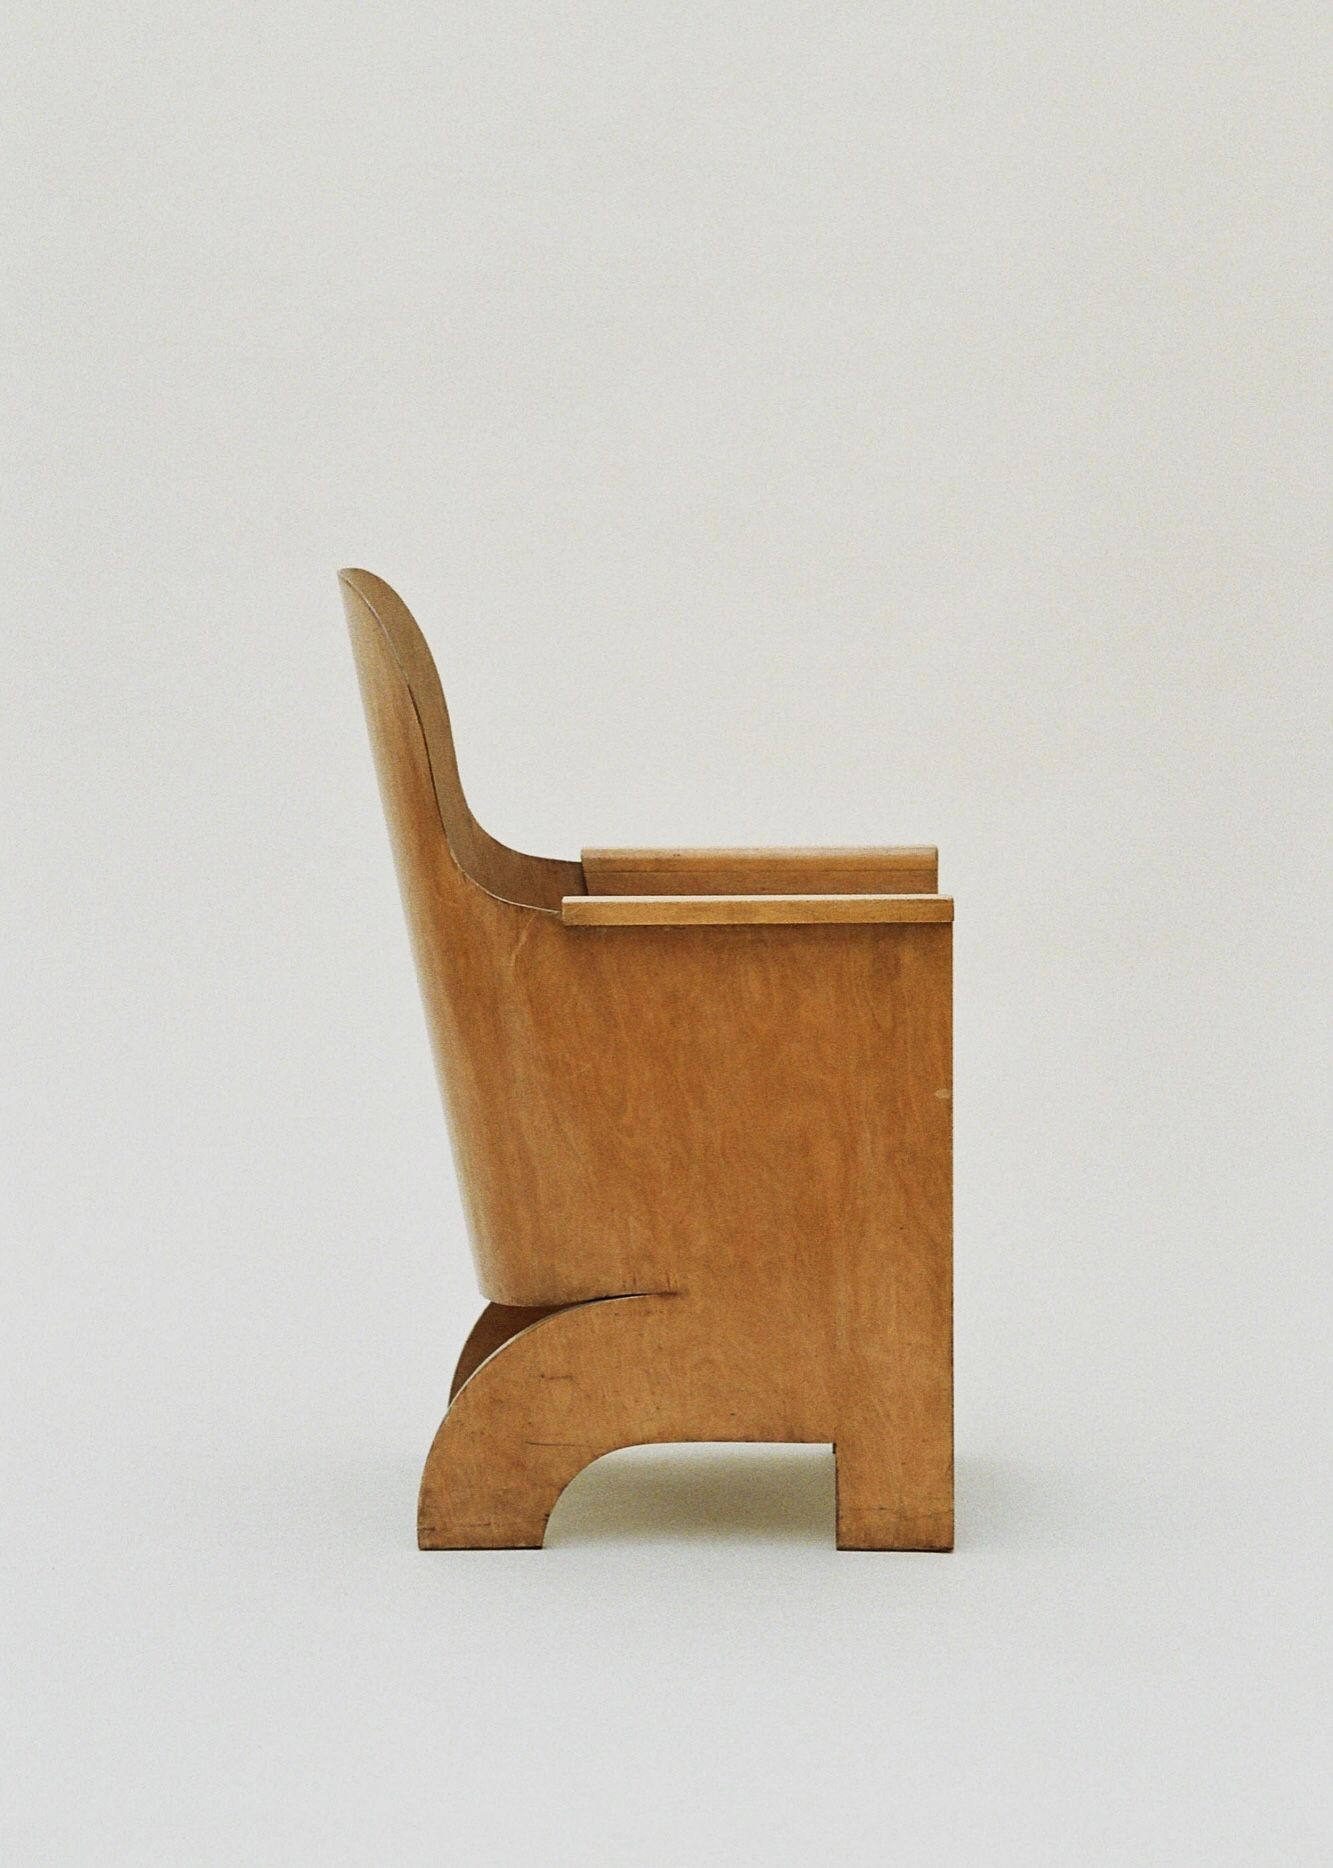 Gerald summers megaw chair makers of simple furniture abelsloane1934